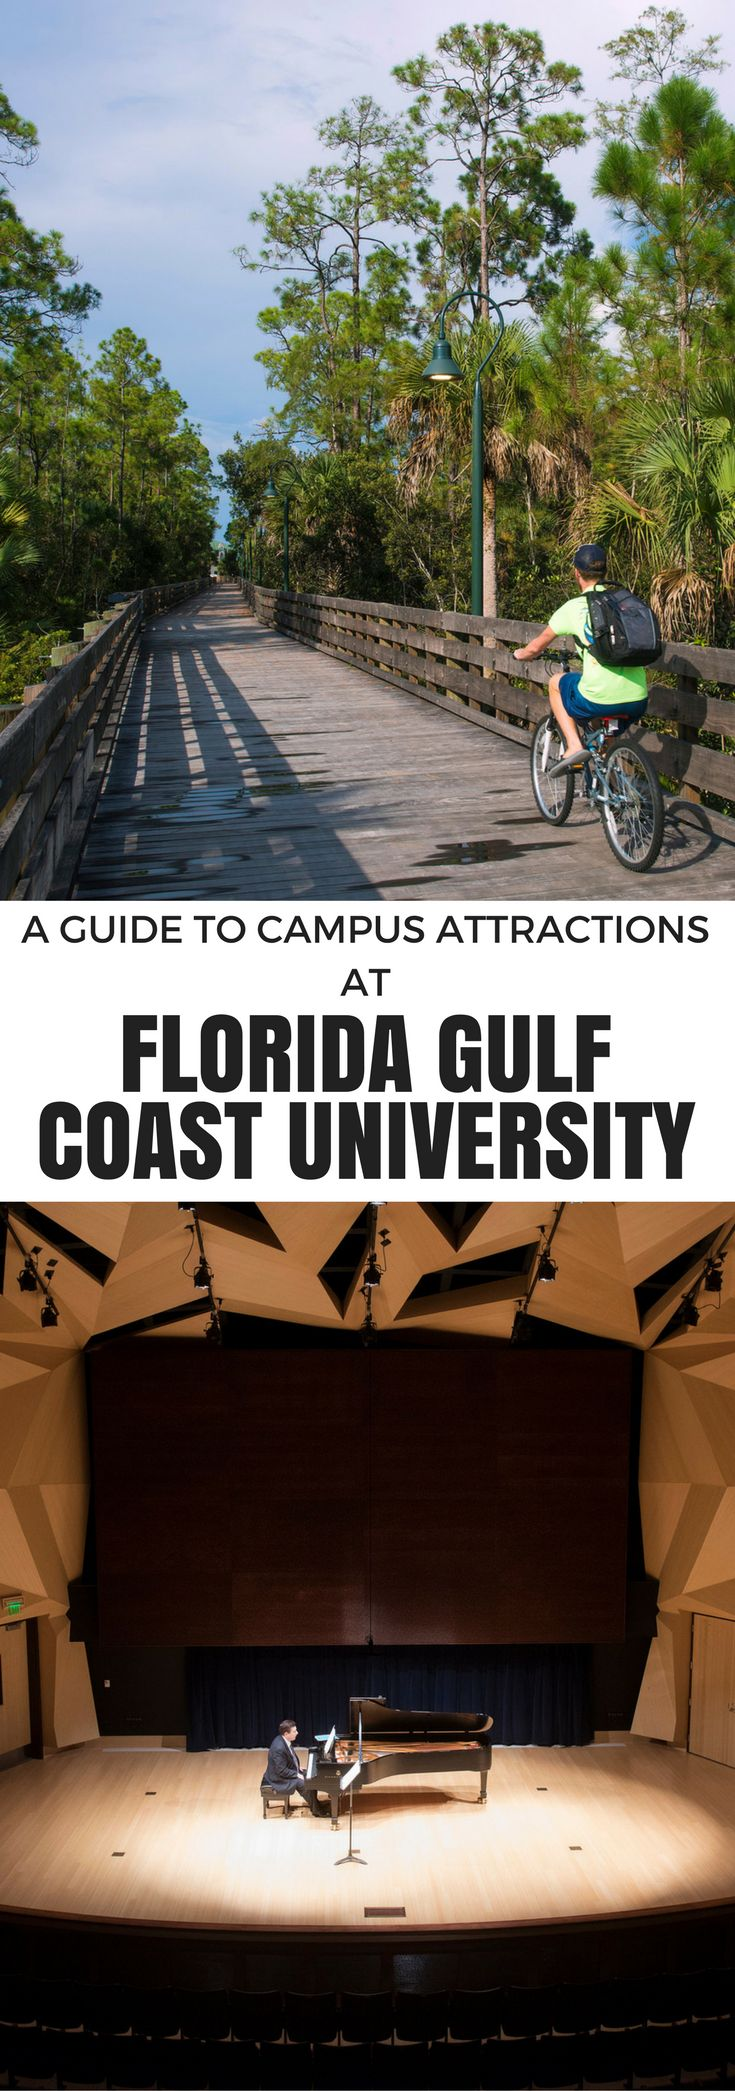 A Guide to Campus Attractions at Florida Gulf Coast University | #Florida #Travel